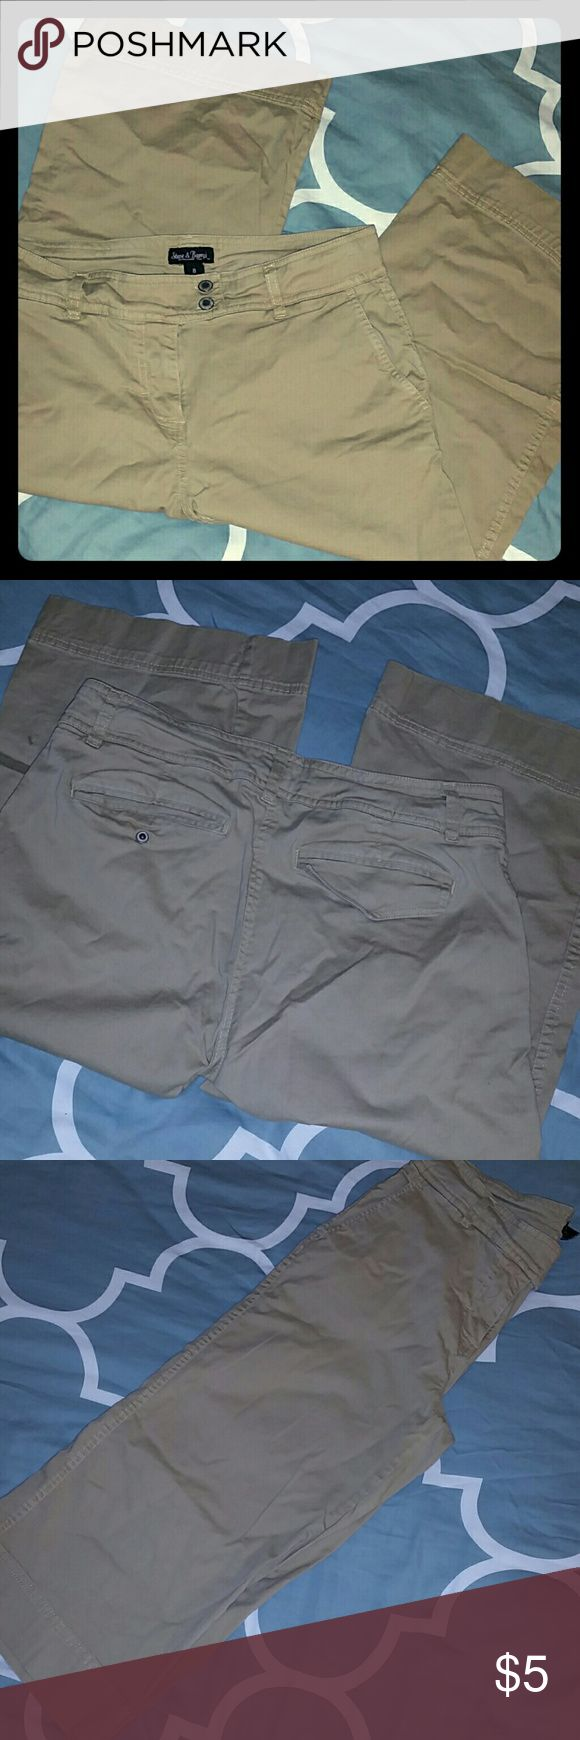 *BUY 2 GET 1 FREE*Wide-leg Cotton/Stretch Capris Only worn once or twice!  Cotton/stretch khaki capris with a wide leg. Steve & Barry's Pants Capris